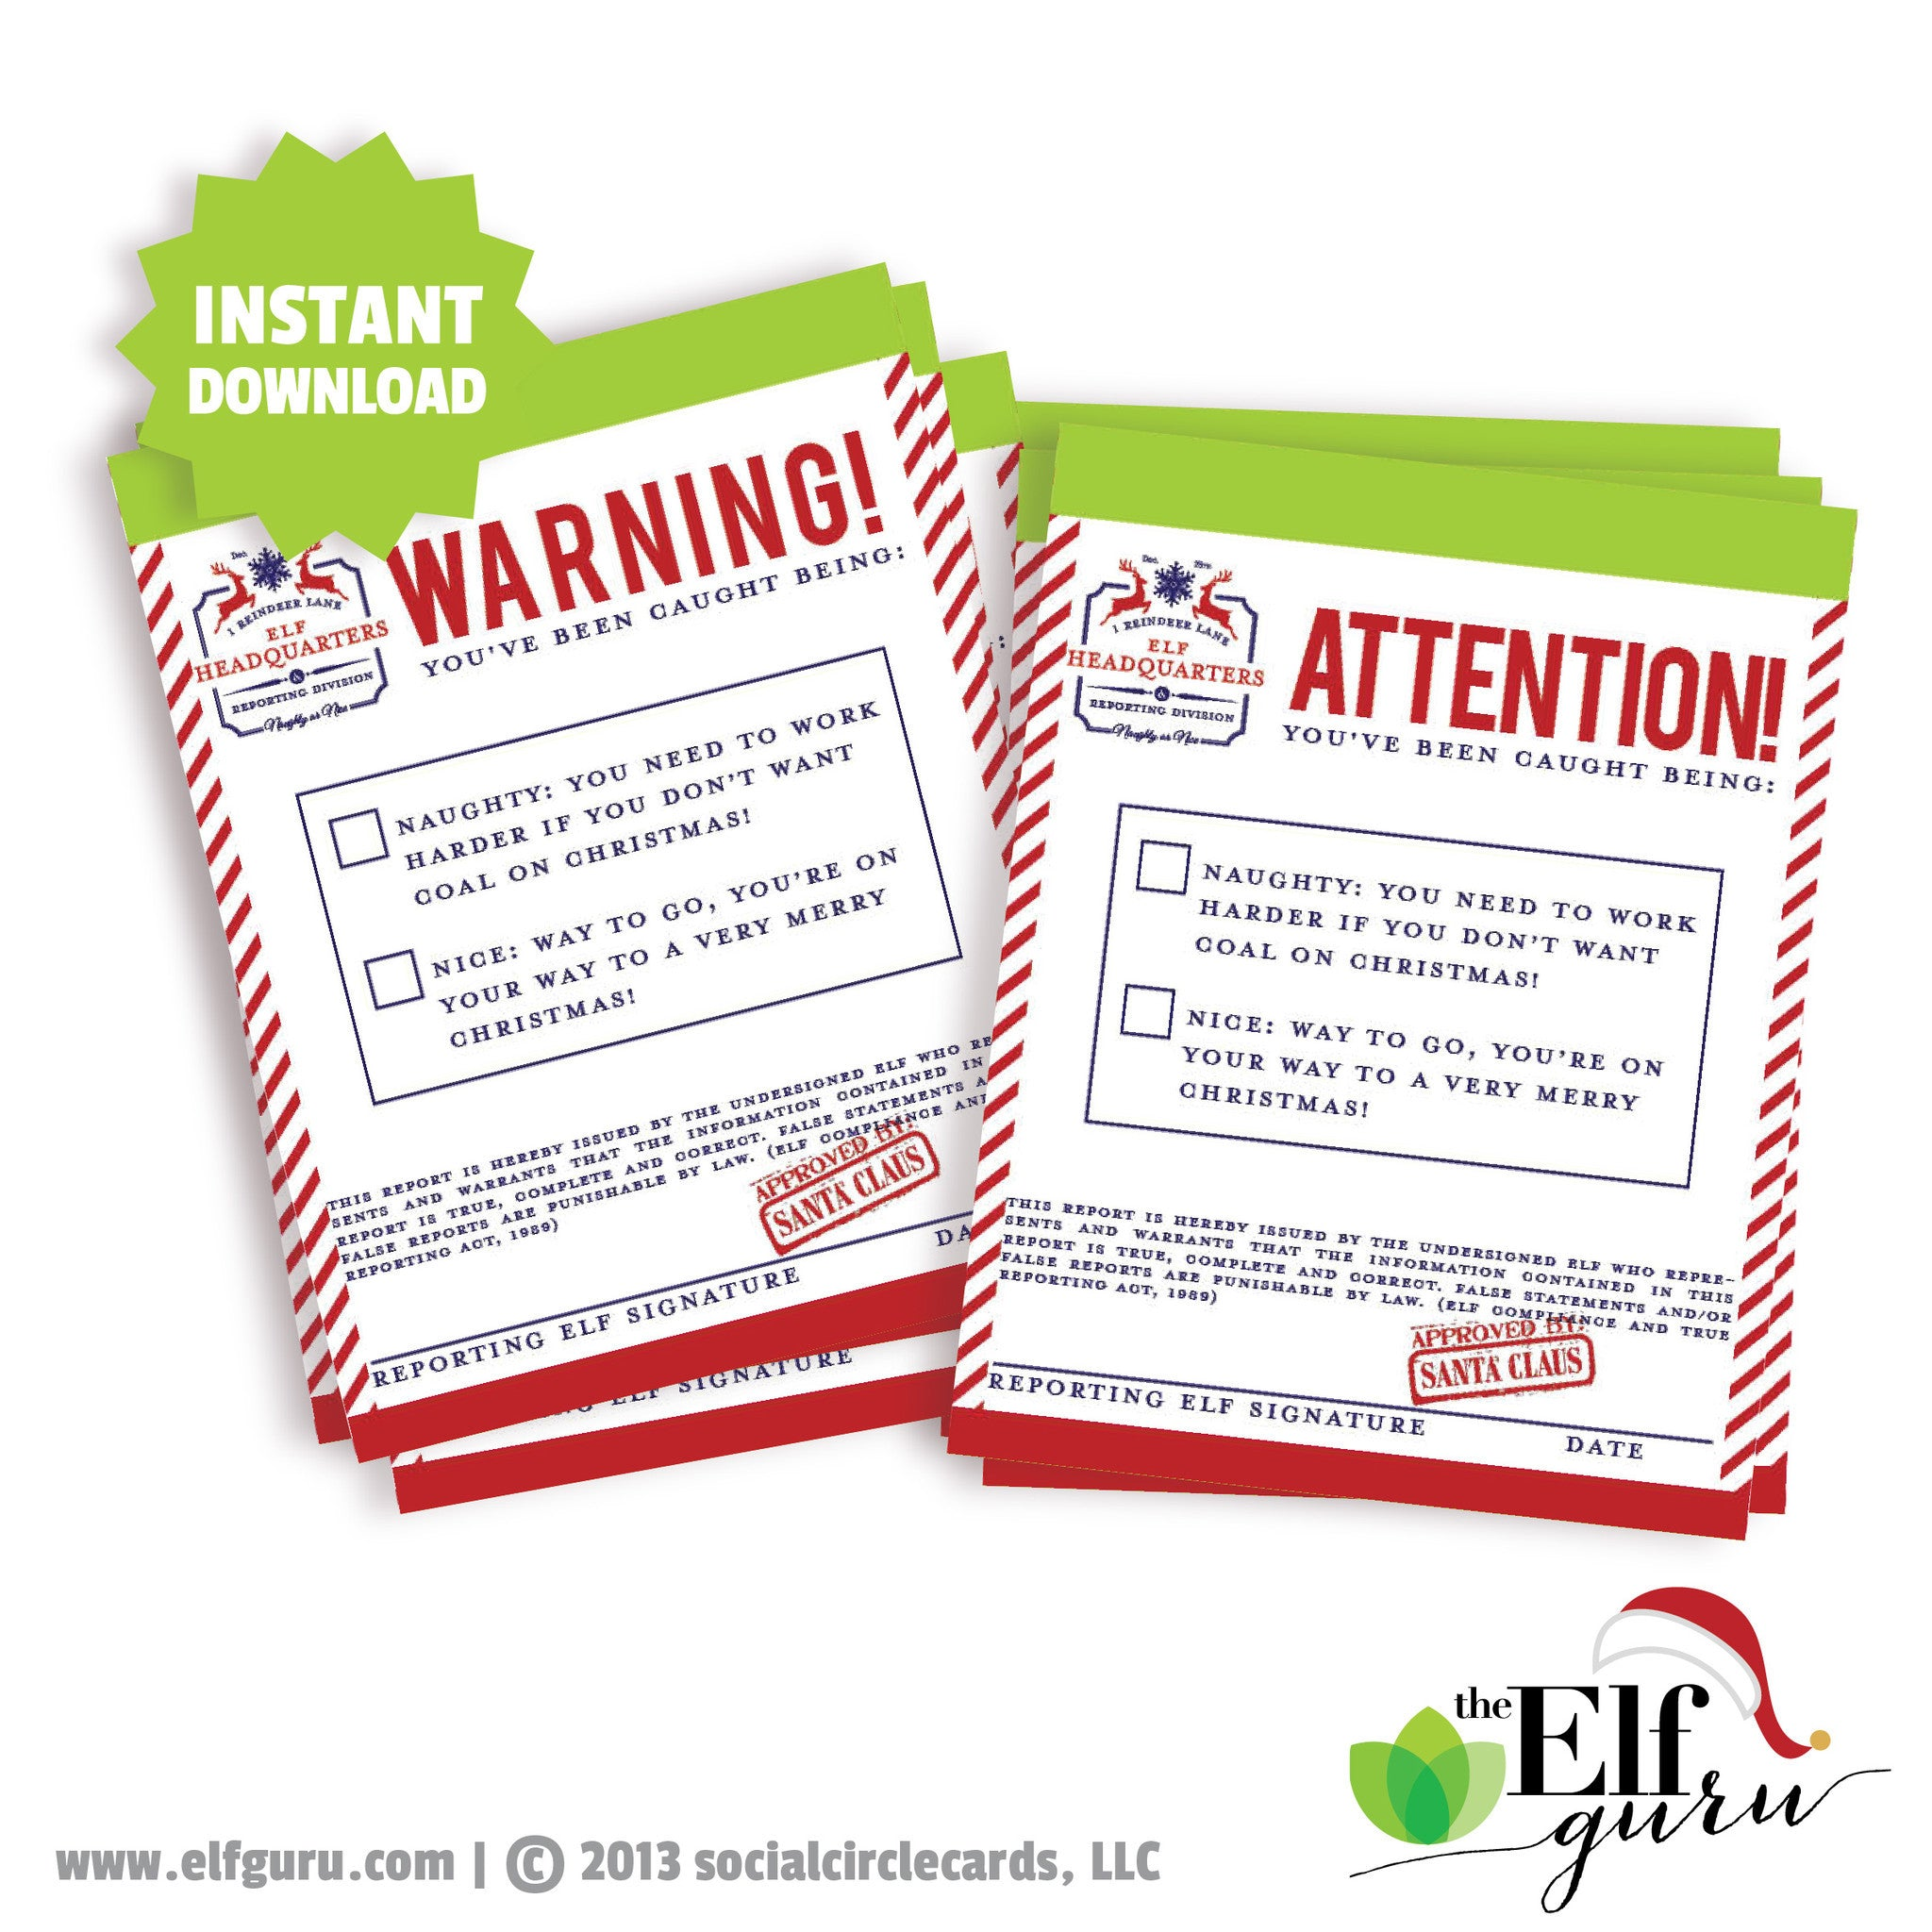 Elf Warning Notices & Attention Notices